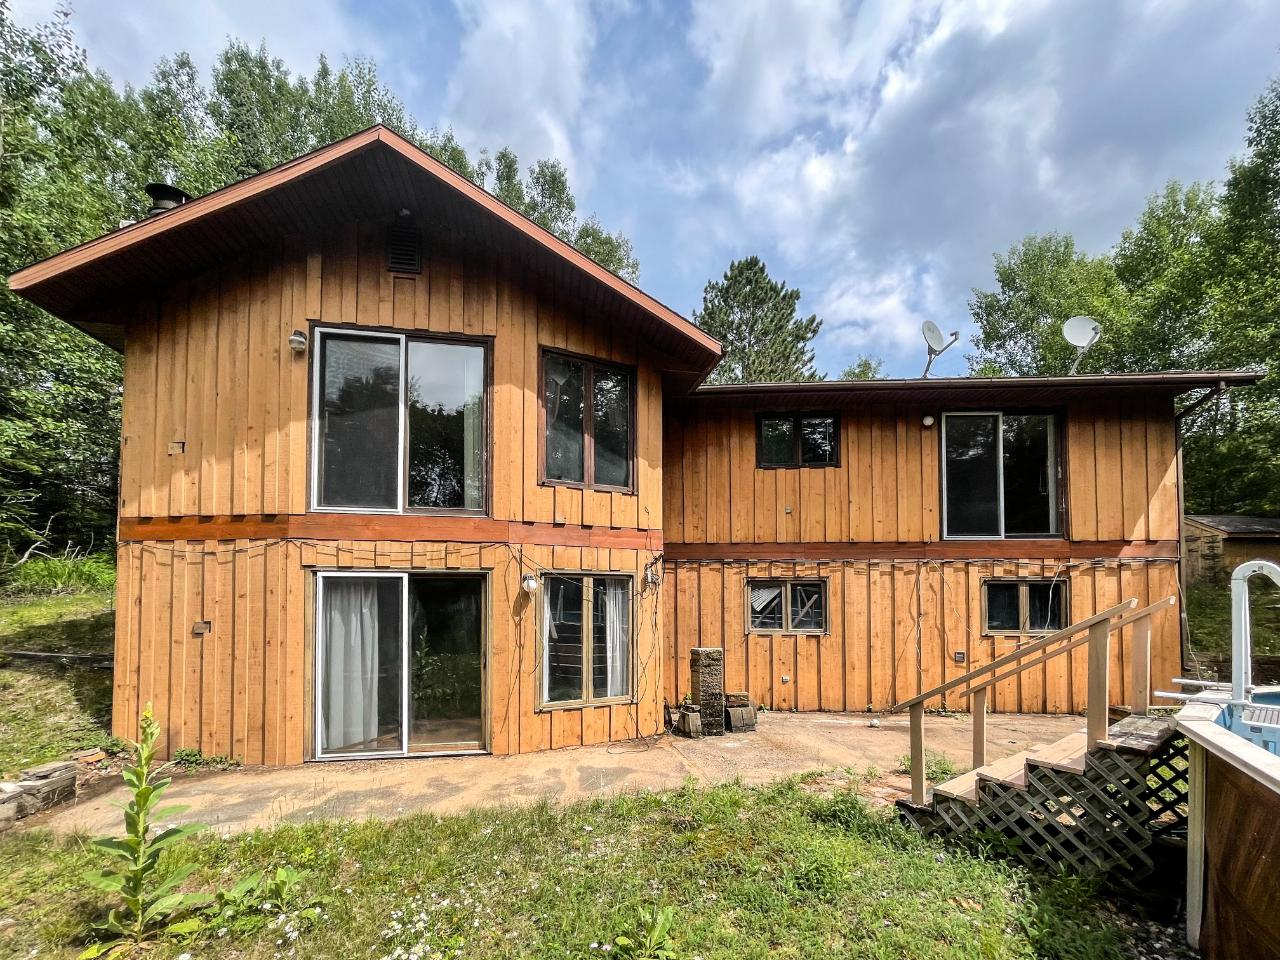 Unique opportunity to purchase a 3-bedroom, 2 bath home w/ off water taxes and a little unknown public access across the road on the Rice River Flowage with sand frontage for swimming or carry in access for paddling on big water. The main level great room offers a wood burning fireplace, large windows and an open concept kitchen and dining area and the entrance to the attached garage. 2 bedrooms and 1 bath upstairs with the master offering a large walk-in closet. The walkout lower level features a rec room with the second wood burning fireplace, an additional bedroom and bath, wet bar and utility room. The patio doors lead you to the concrete patio and complete privacy in your backyard. A little TLC, Exterior paint, decking and elbow grease would allow new owners the opportunity to amplify their equity. Awesome opportunity!